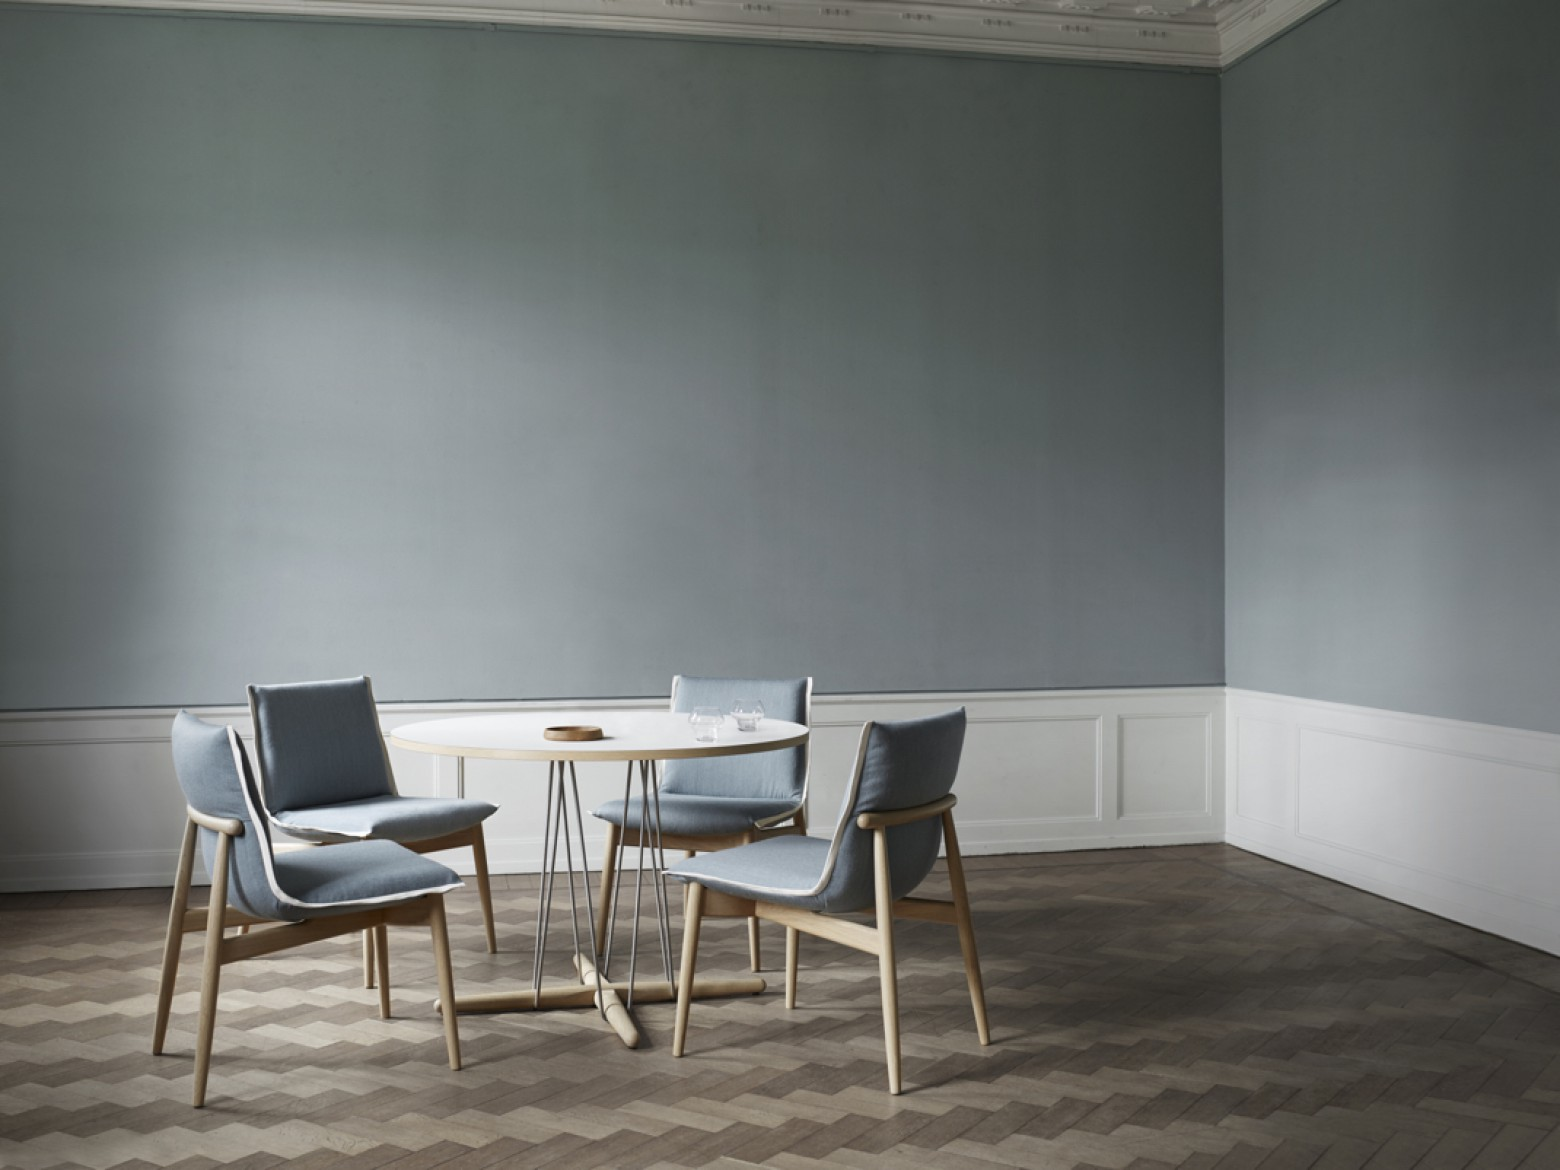 Embrace dining chair met Embrace dining table: NIEUW  Victors Design Agency